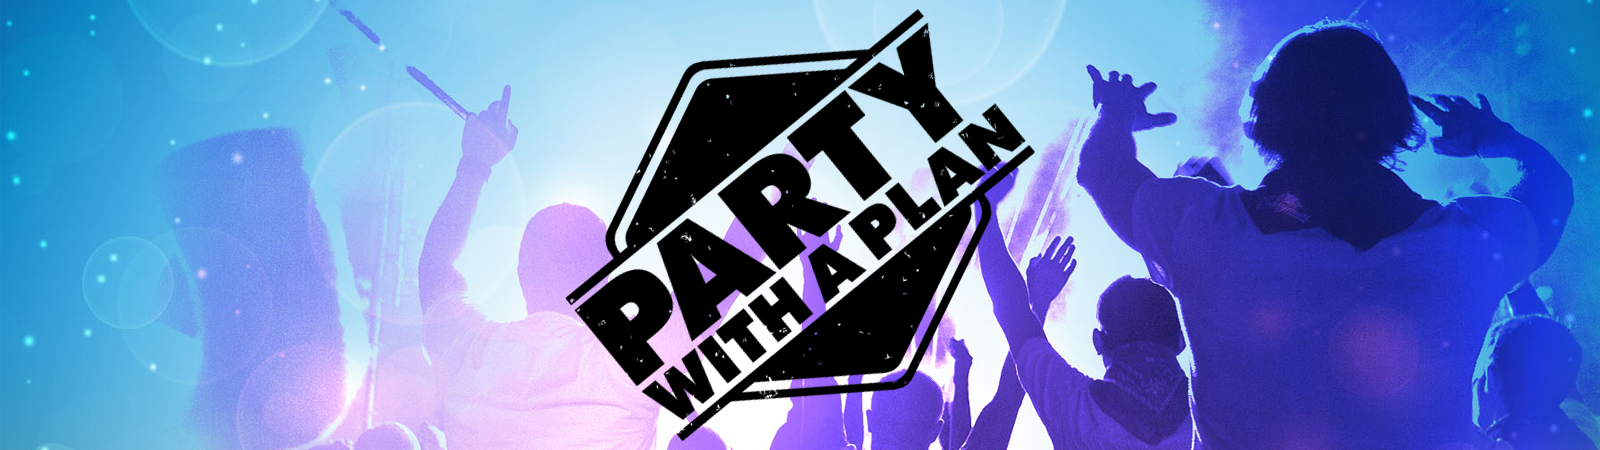 Party With A Plan®